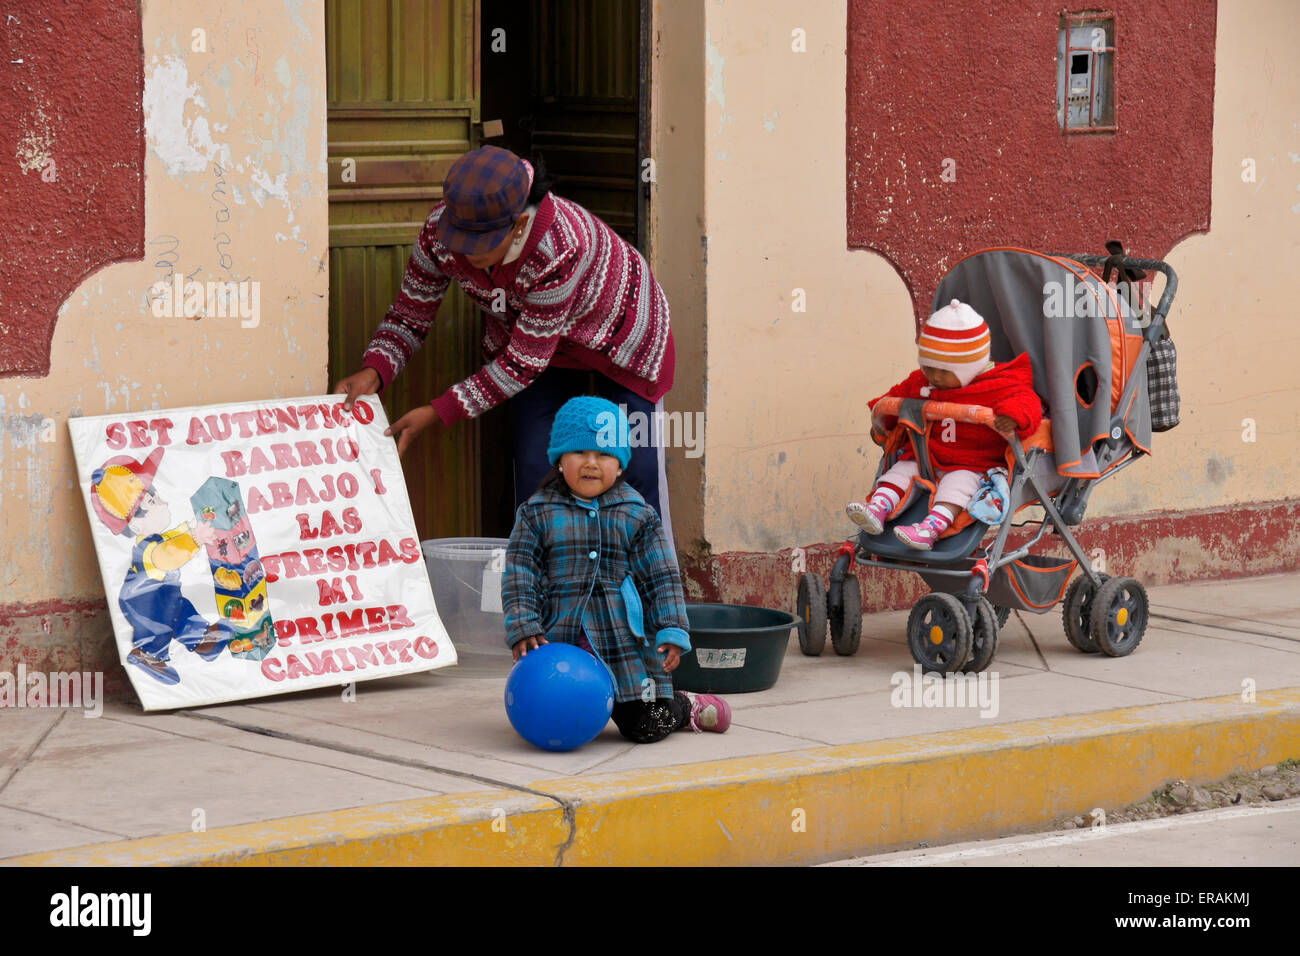 Woman and children outside nursery school, Lampa, Peru - Stock Image